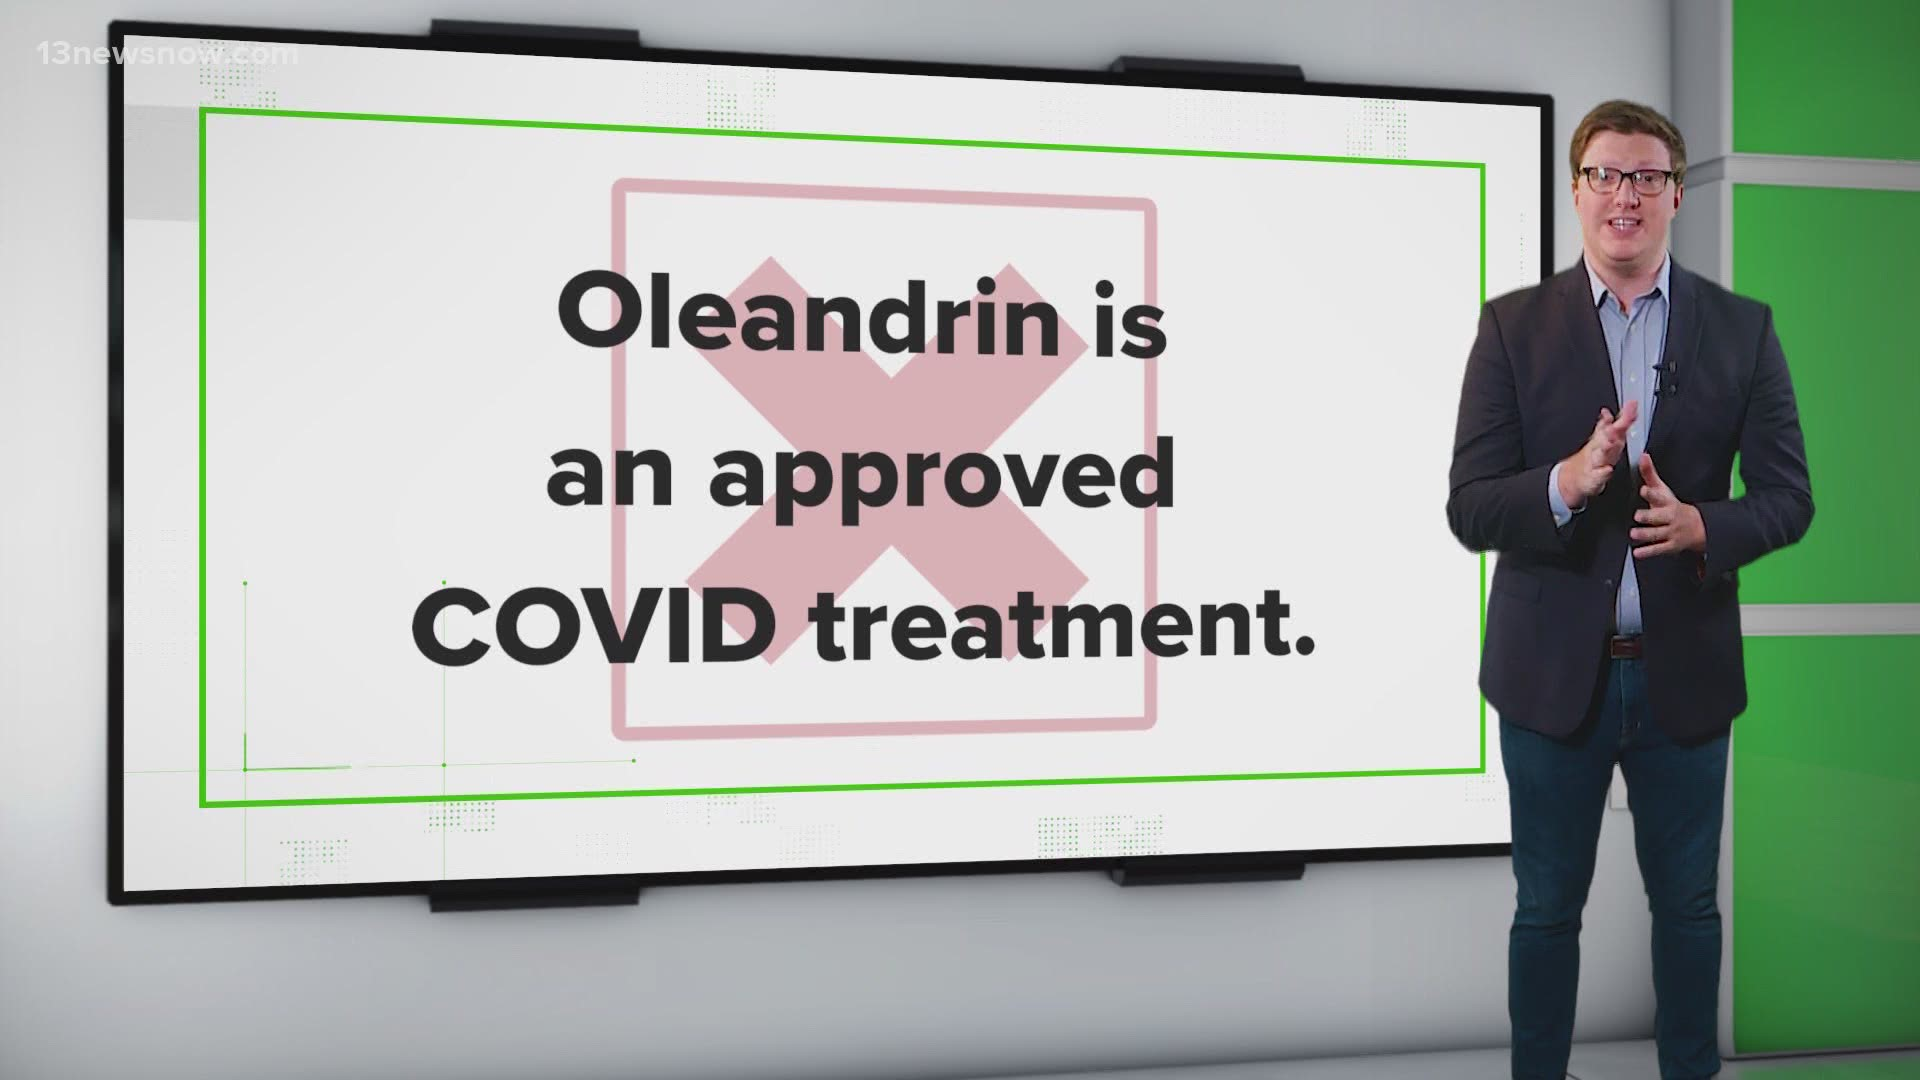 Mypillow Ceo Touts Oleandrin As Miracle Cure For Covid 19 13newsnow Com